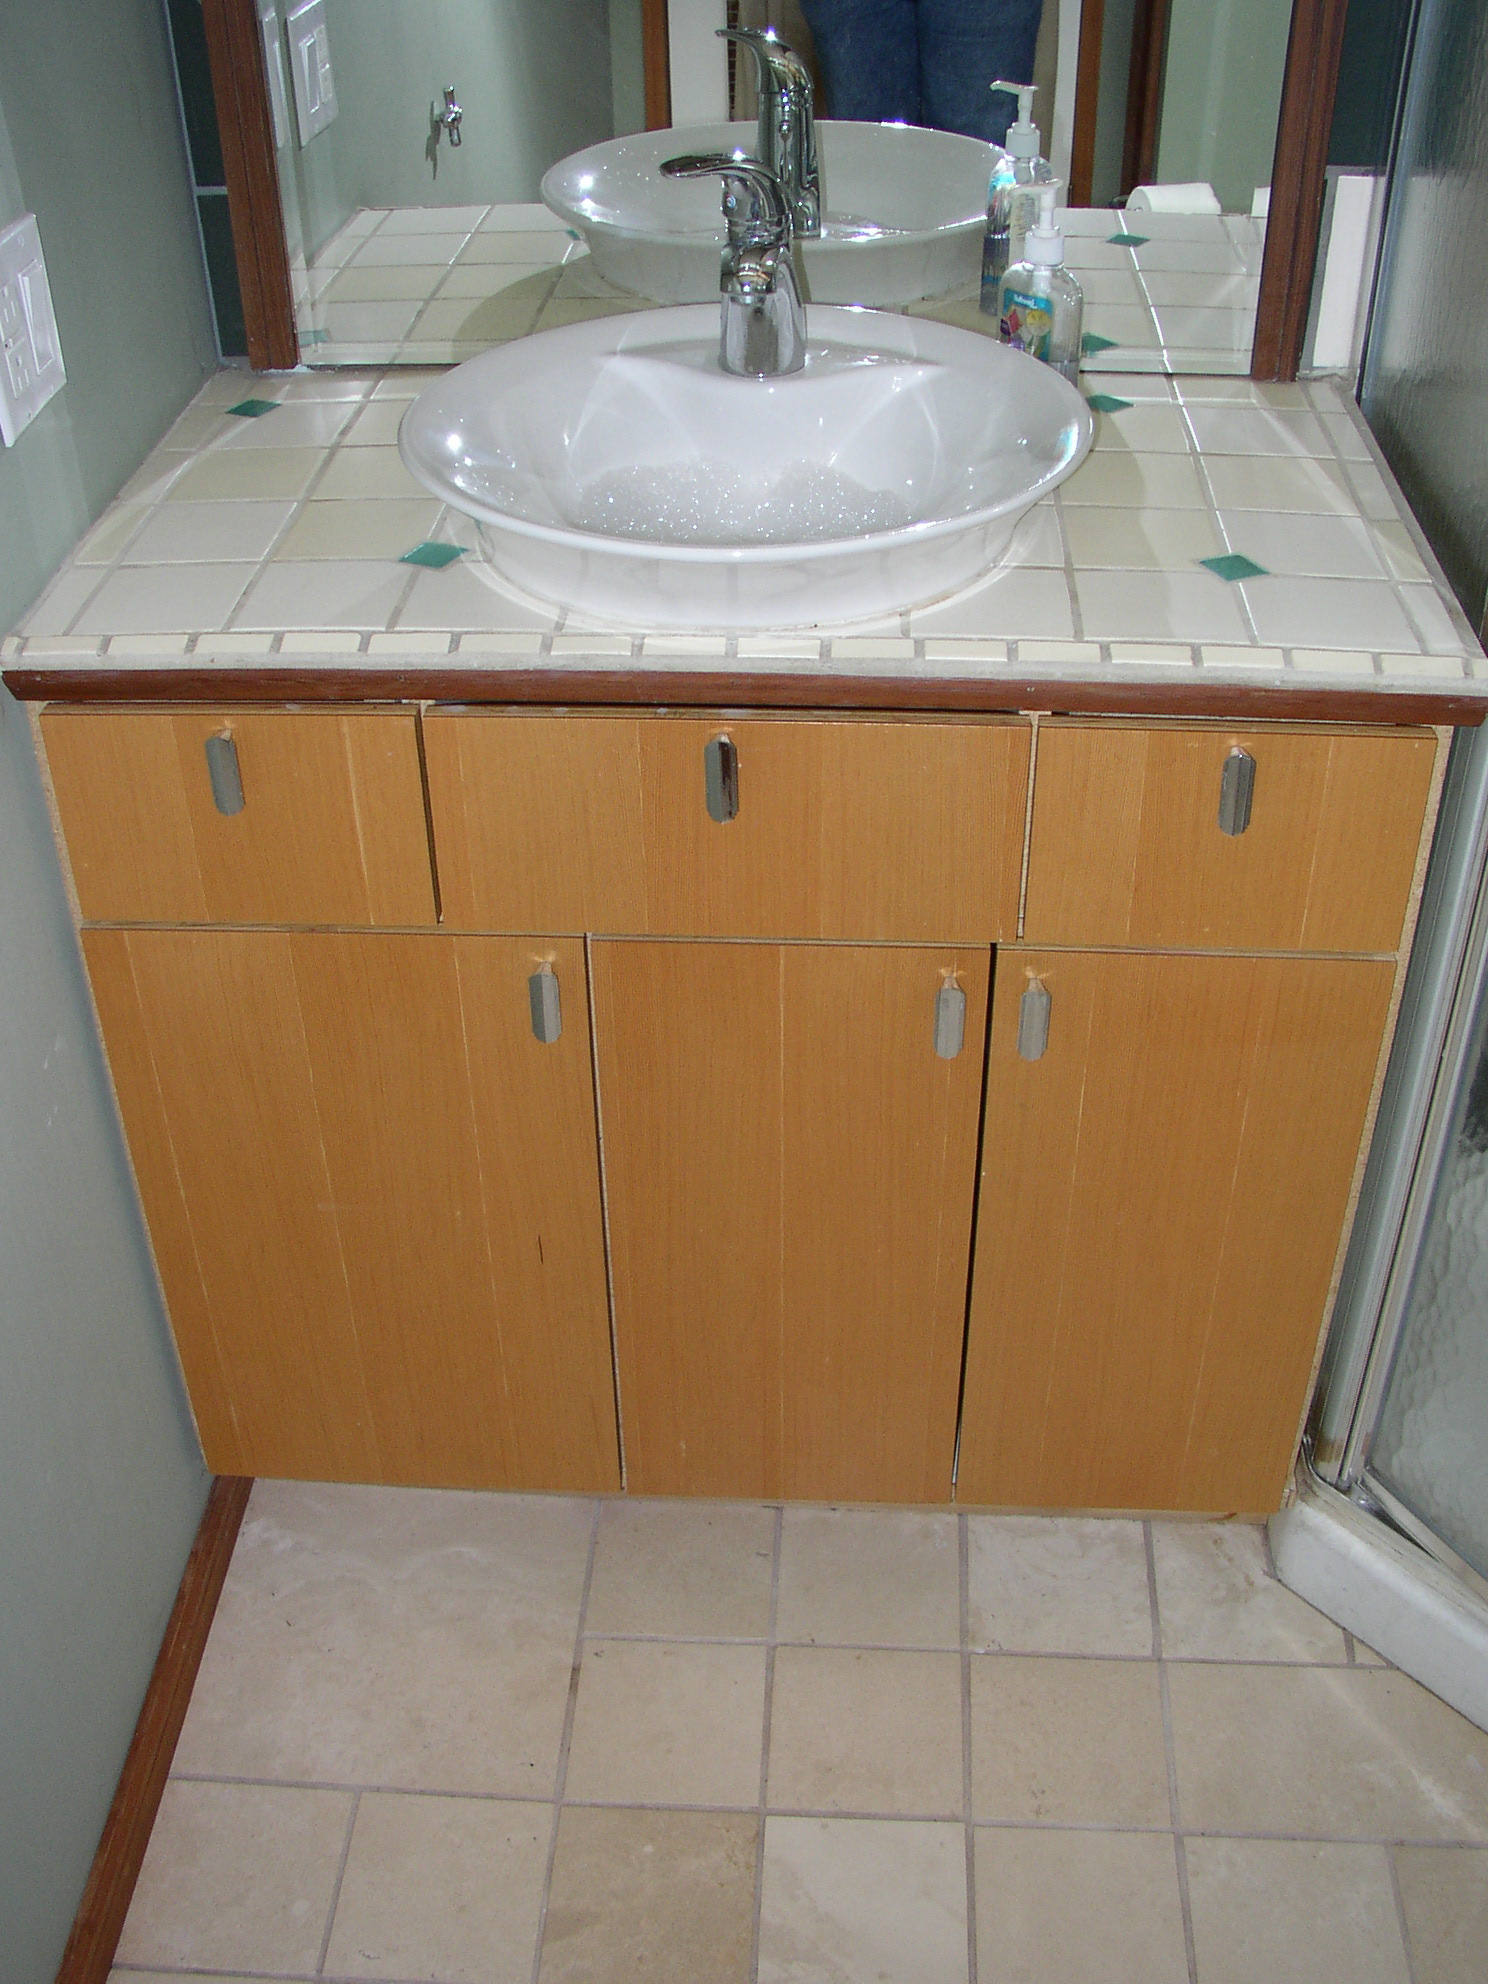 Wimsical tilework and CVG doors with reclaimed pulls